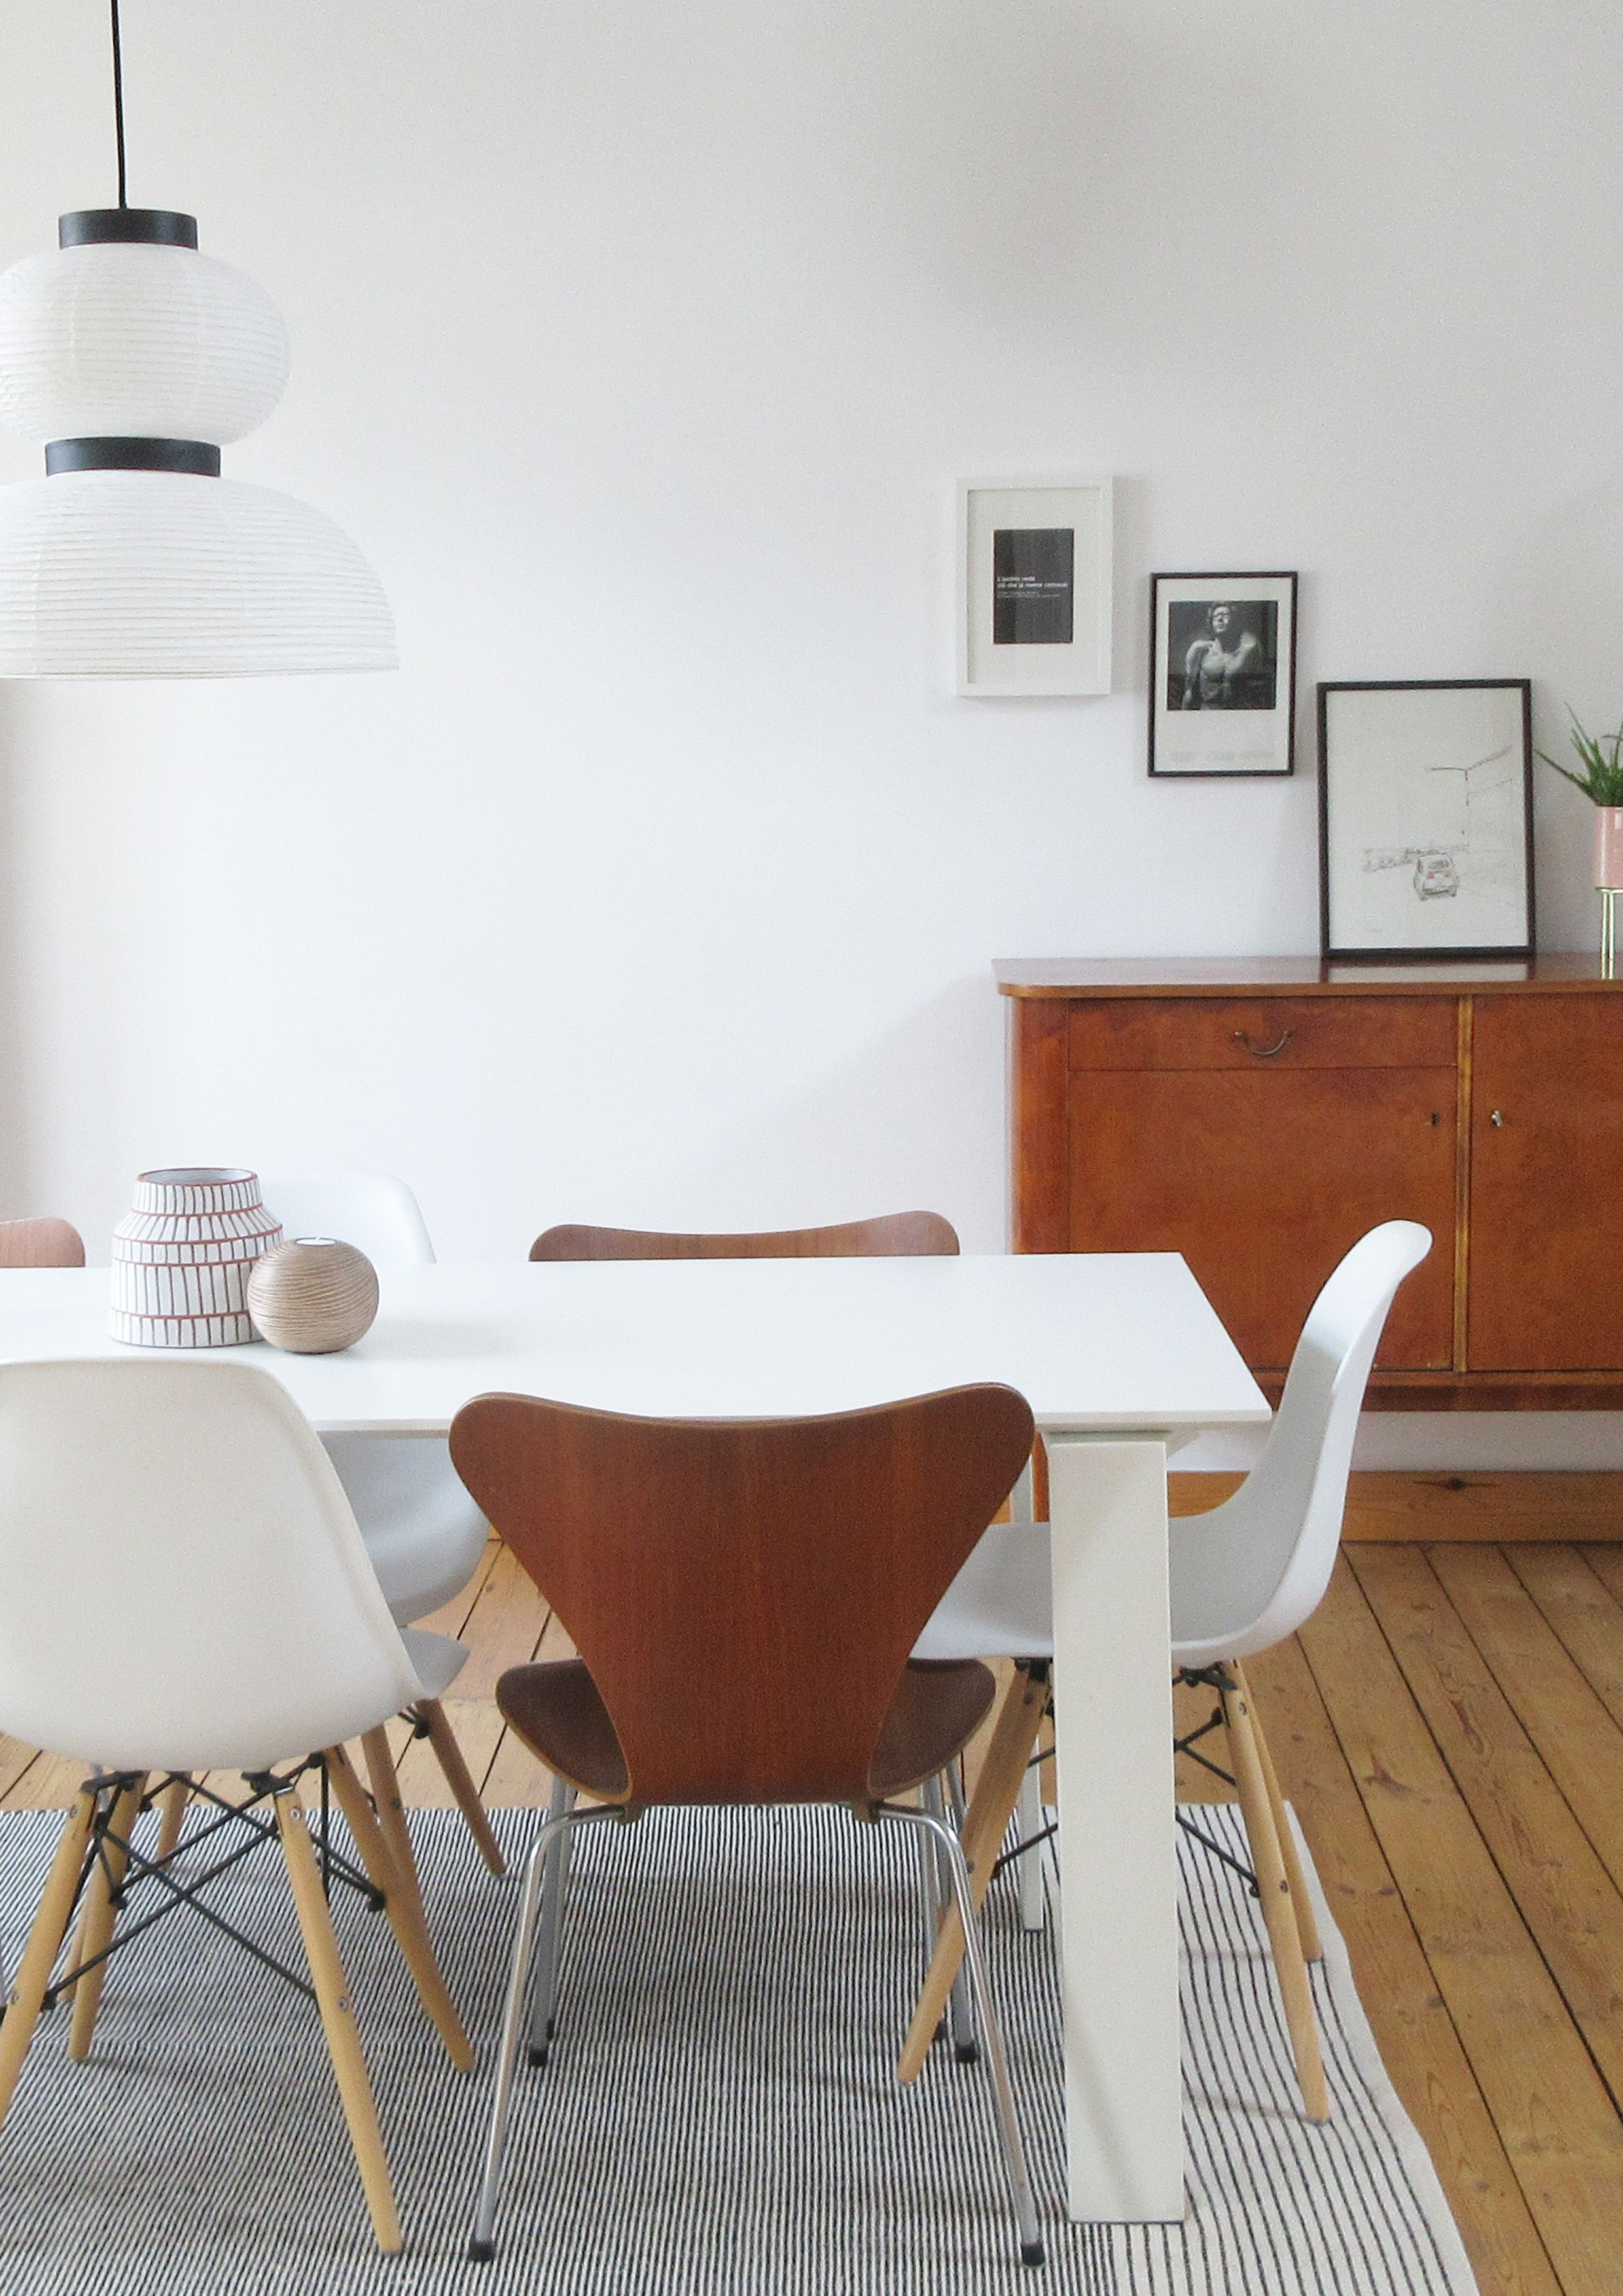 Justinside Interior Design Decoration D Interieur Amenagement D Interieur Dining Room Salle A Manger Jacobsen Chairs Chaises Flat In Brussels Kartell